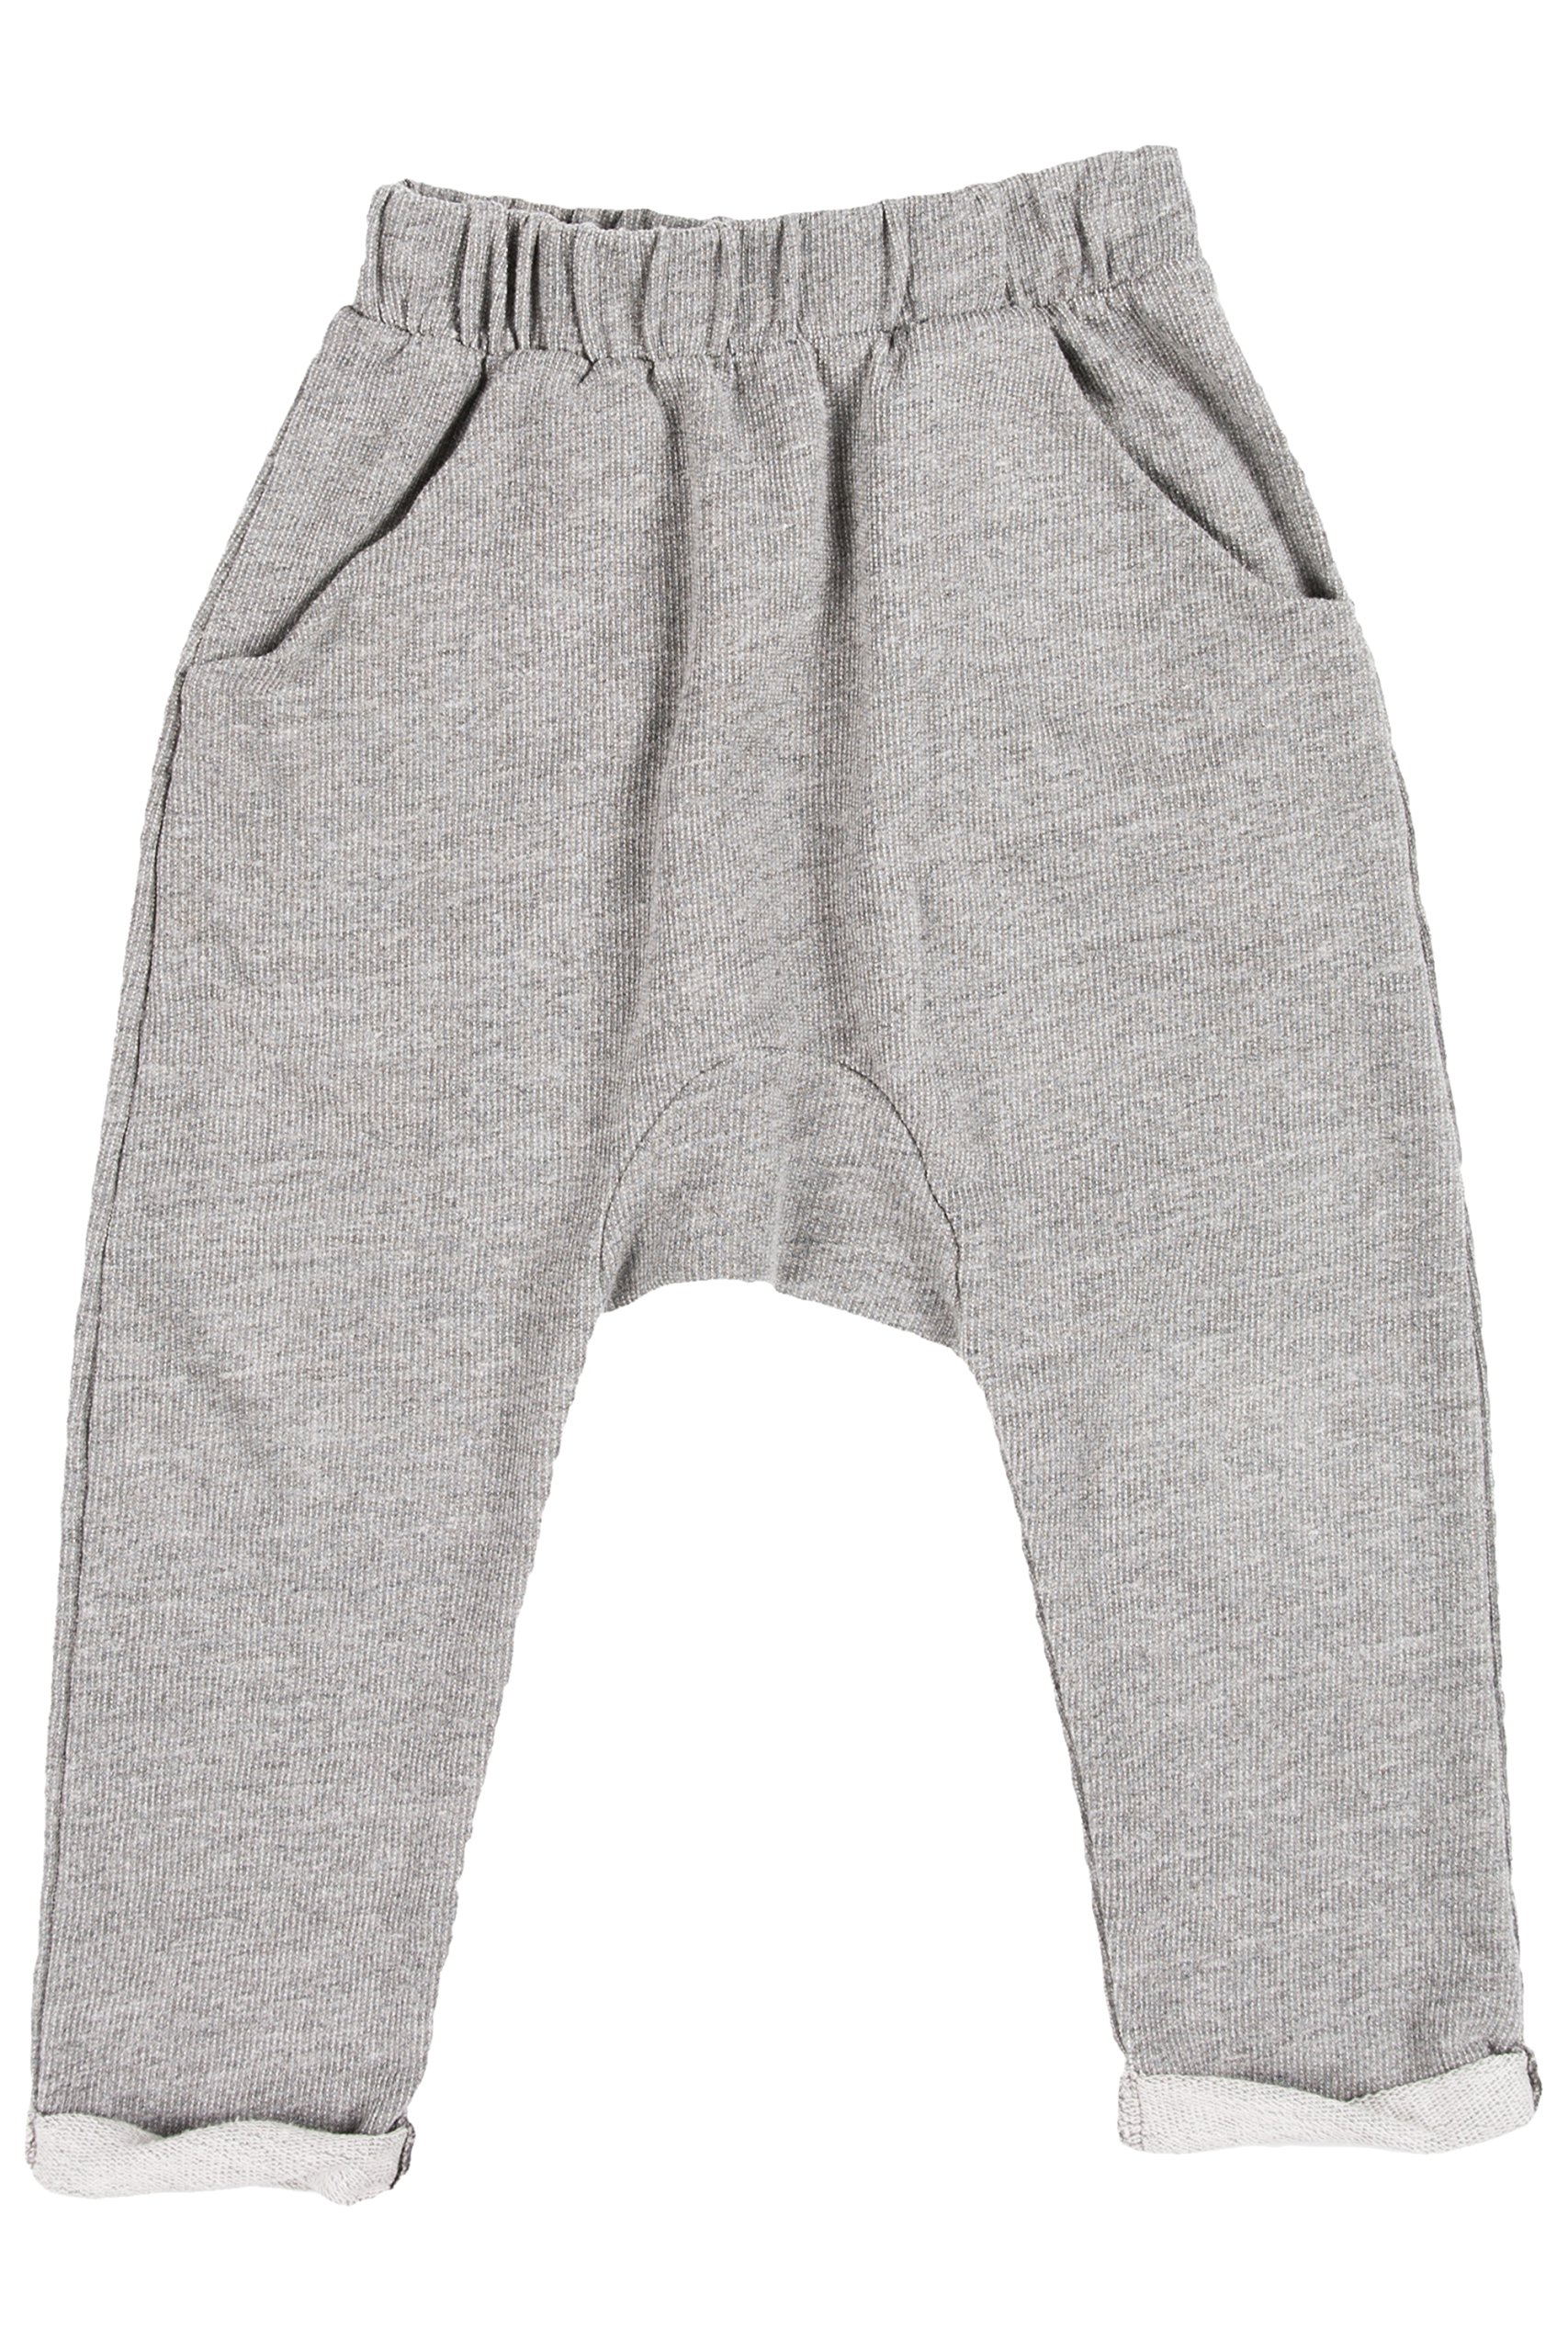 Joah Love Rocco Pant in Heather Grey, 10